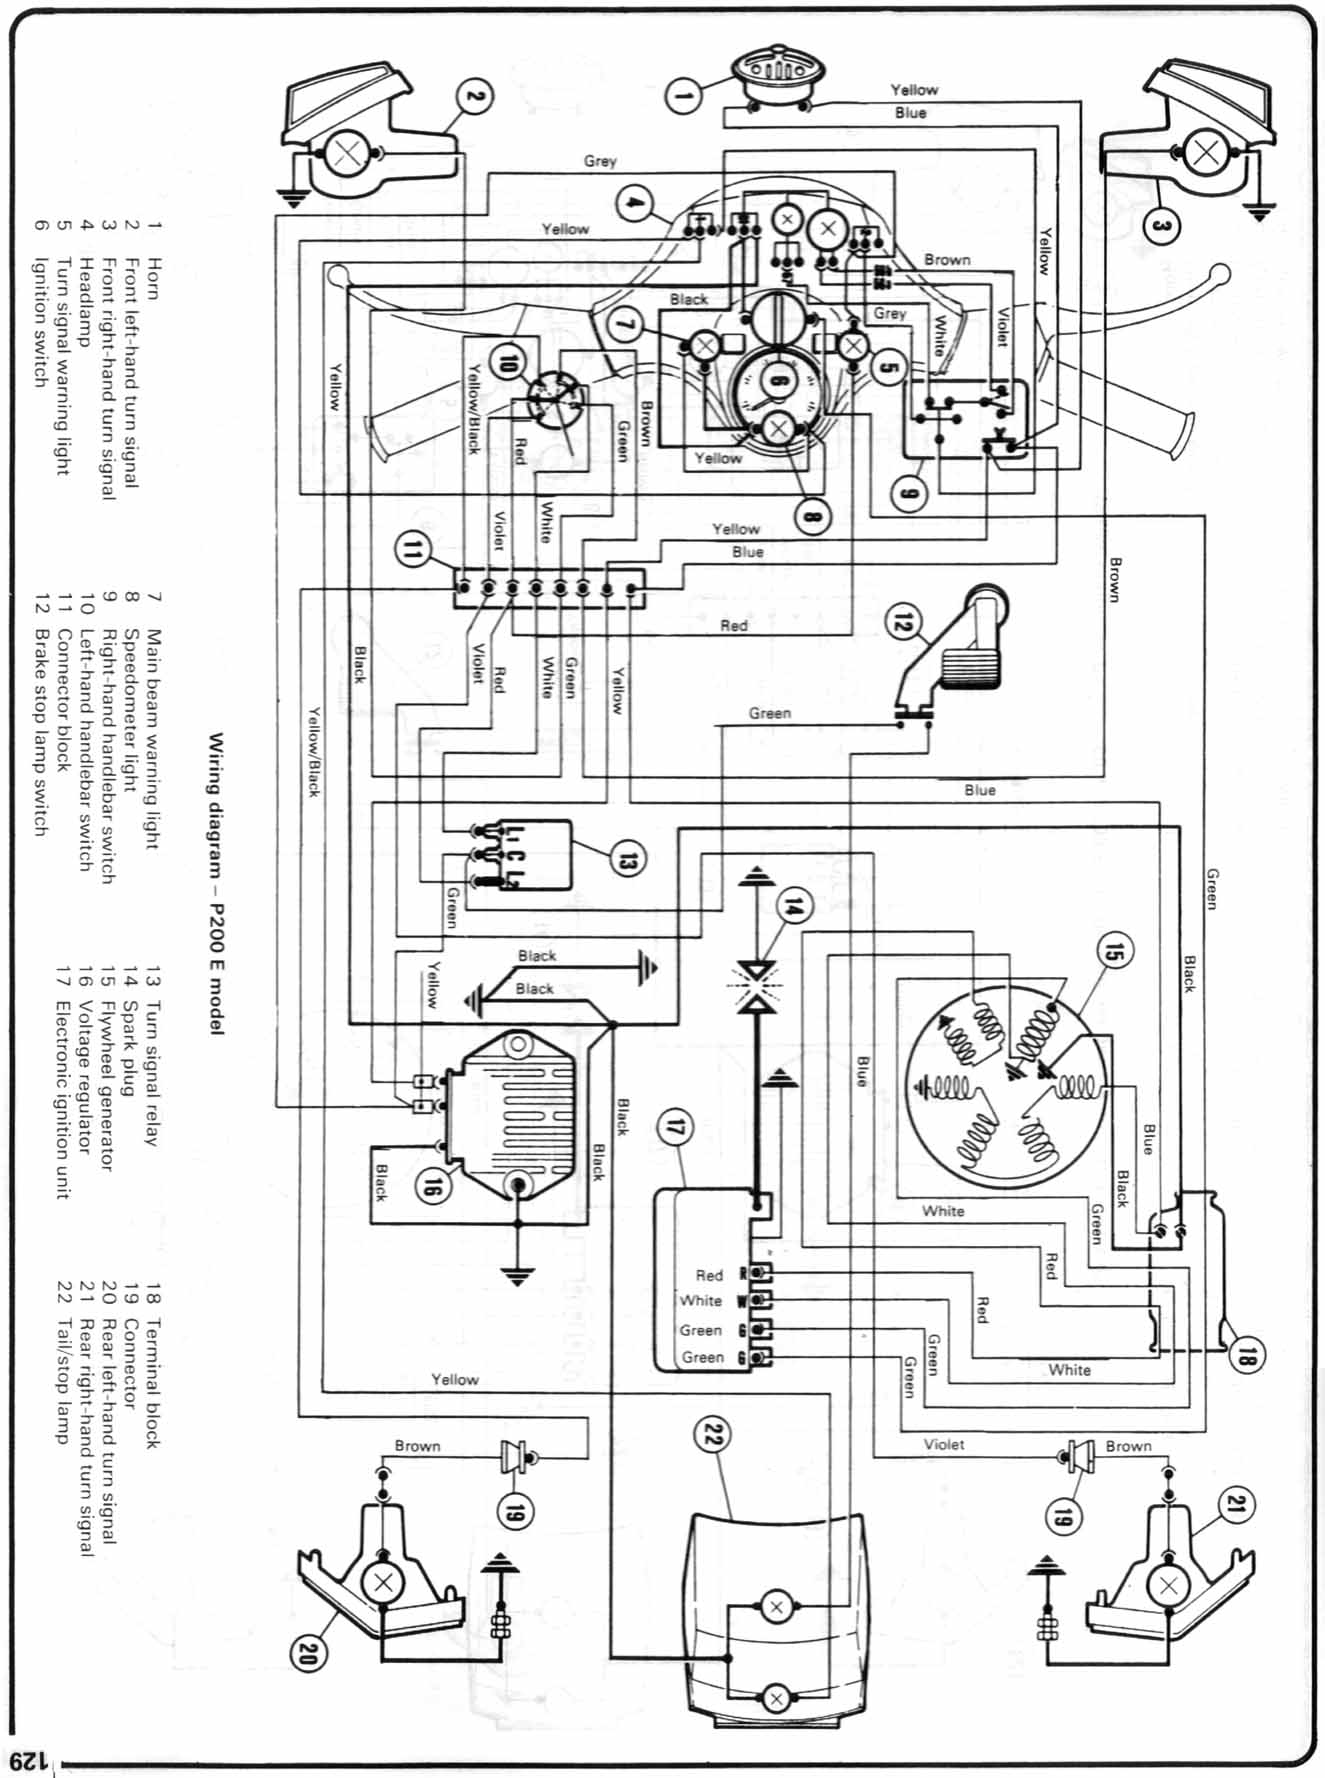 p200diag1 modern vespa seeking advice on an overly ambitious electrical vespa p125x wiring diagram at edmiracle.co